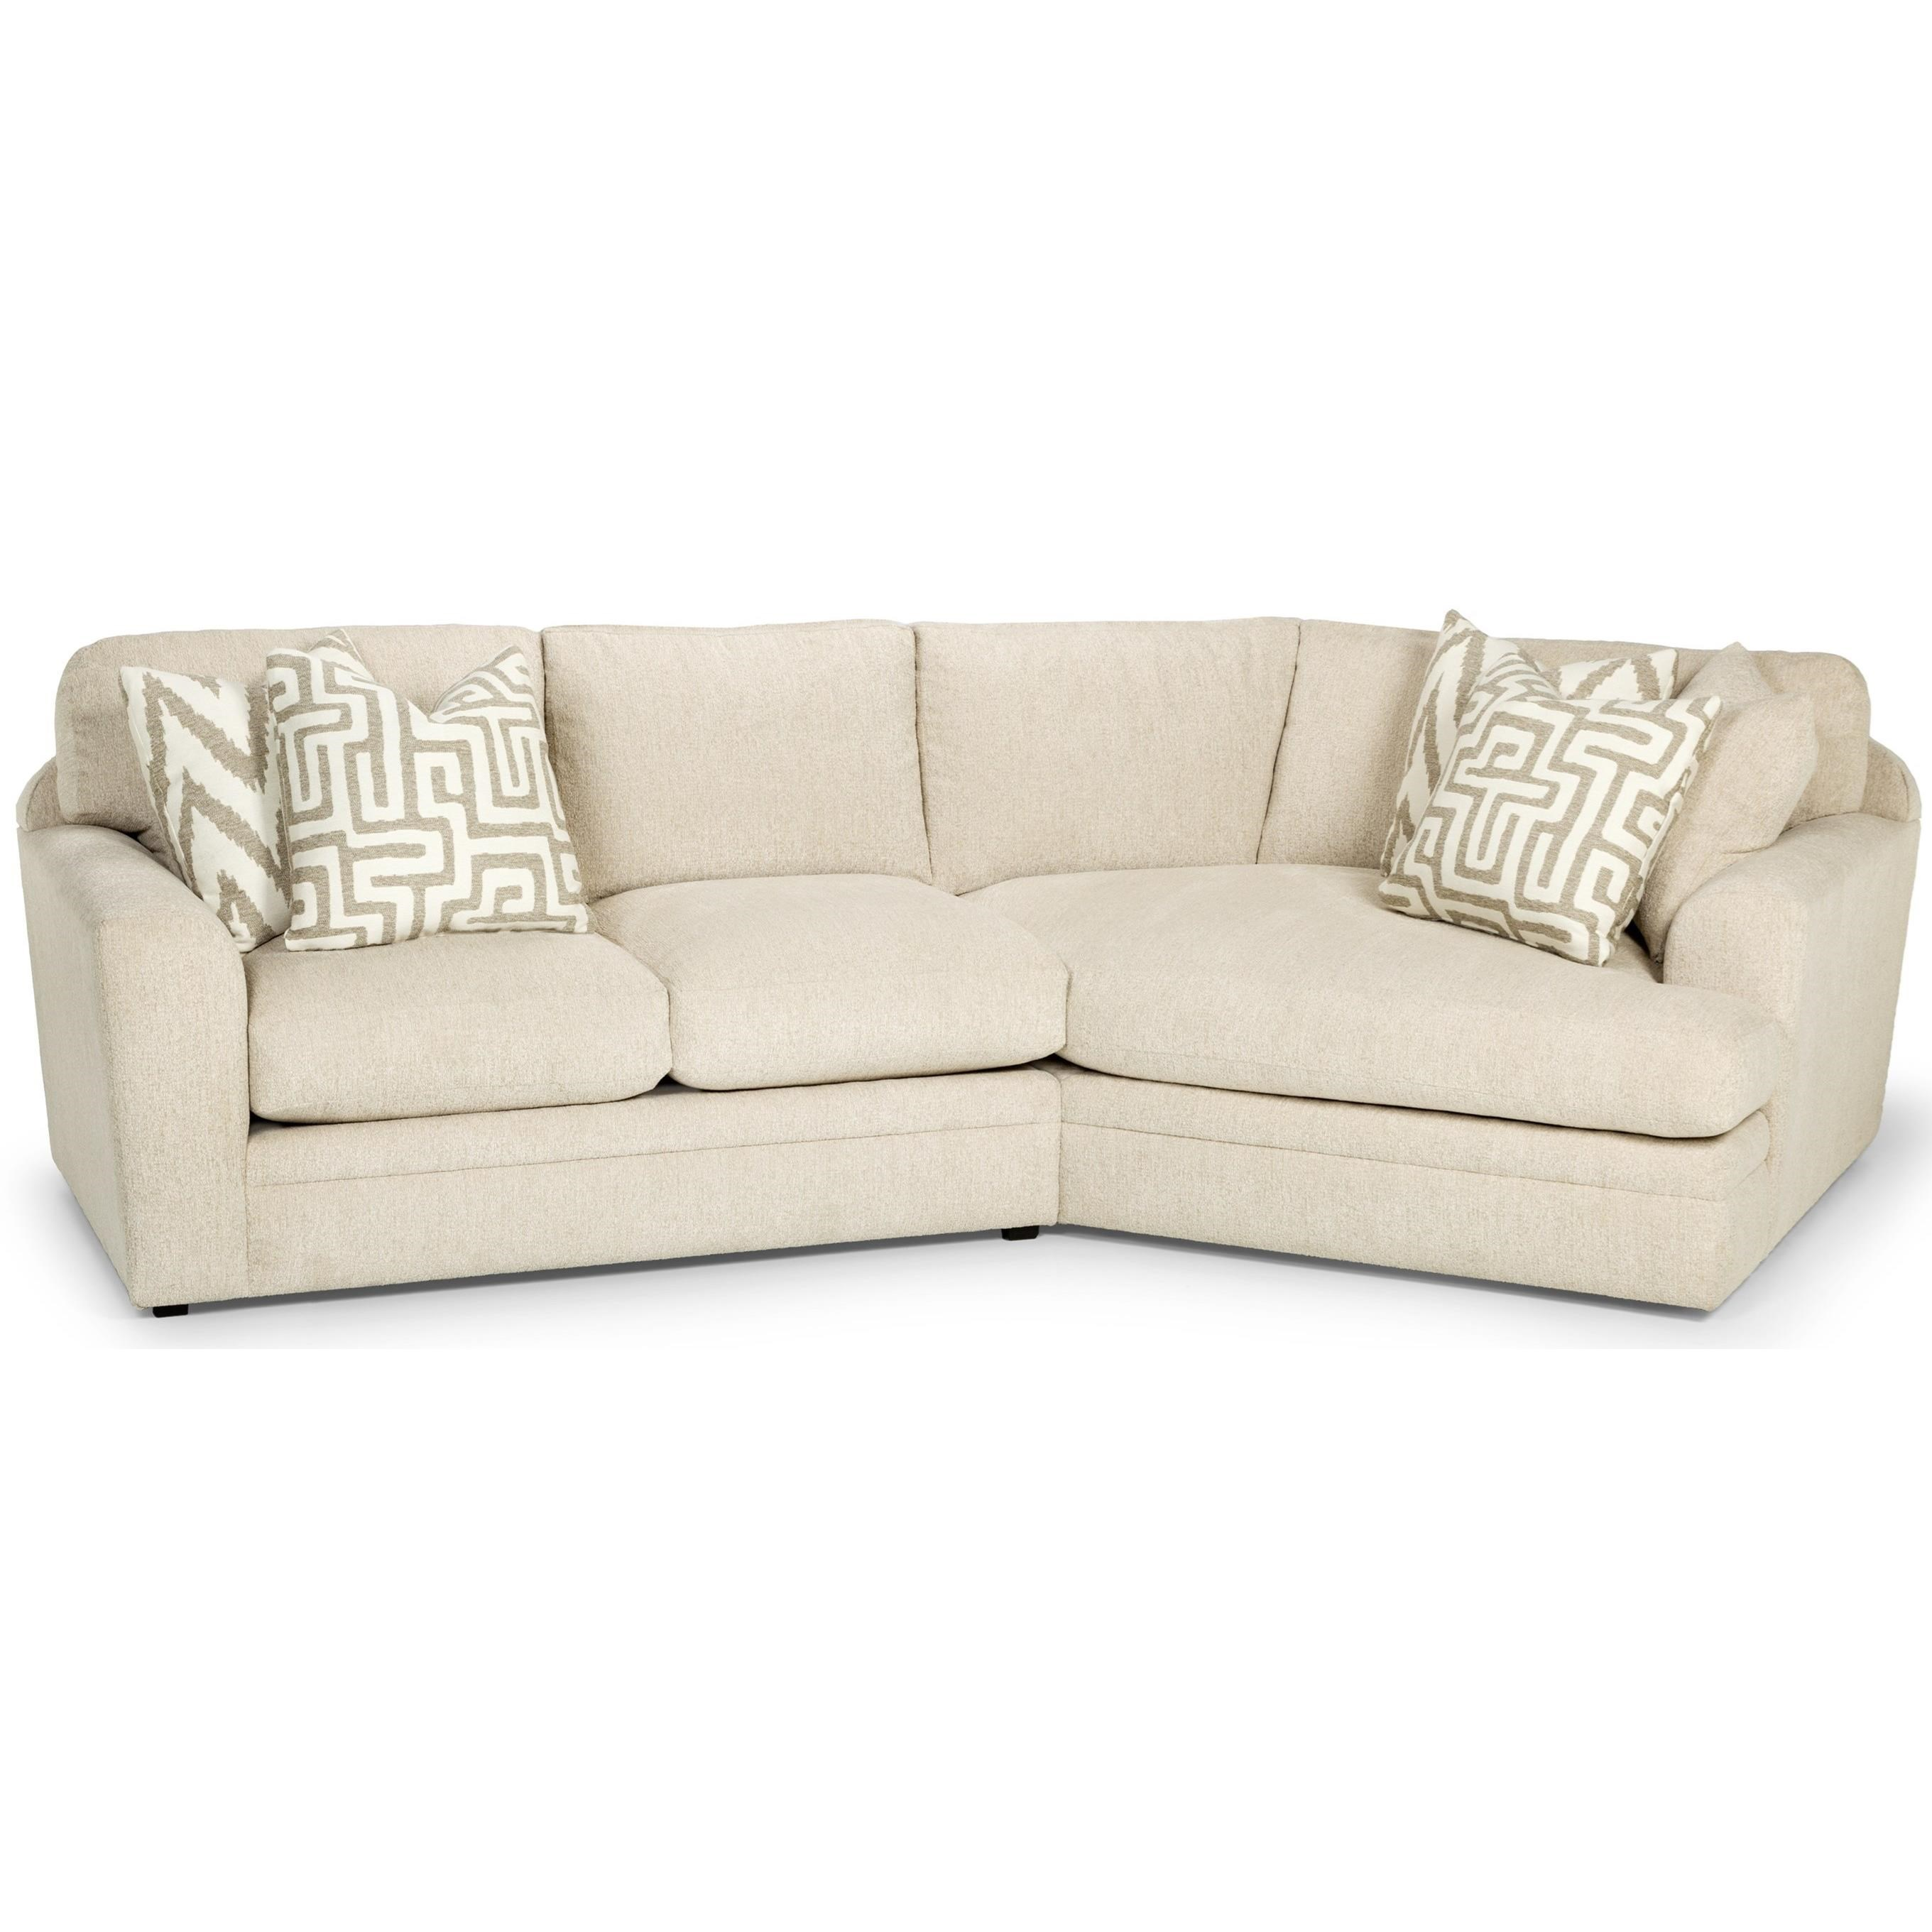 Two Piece Sectional Sofa w/ RAF Cuddler